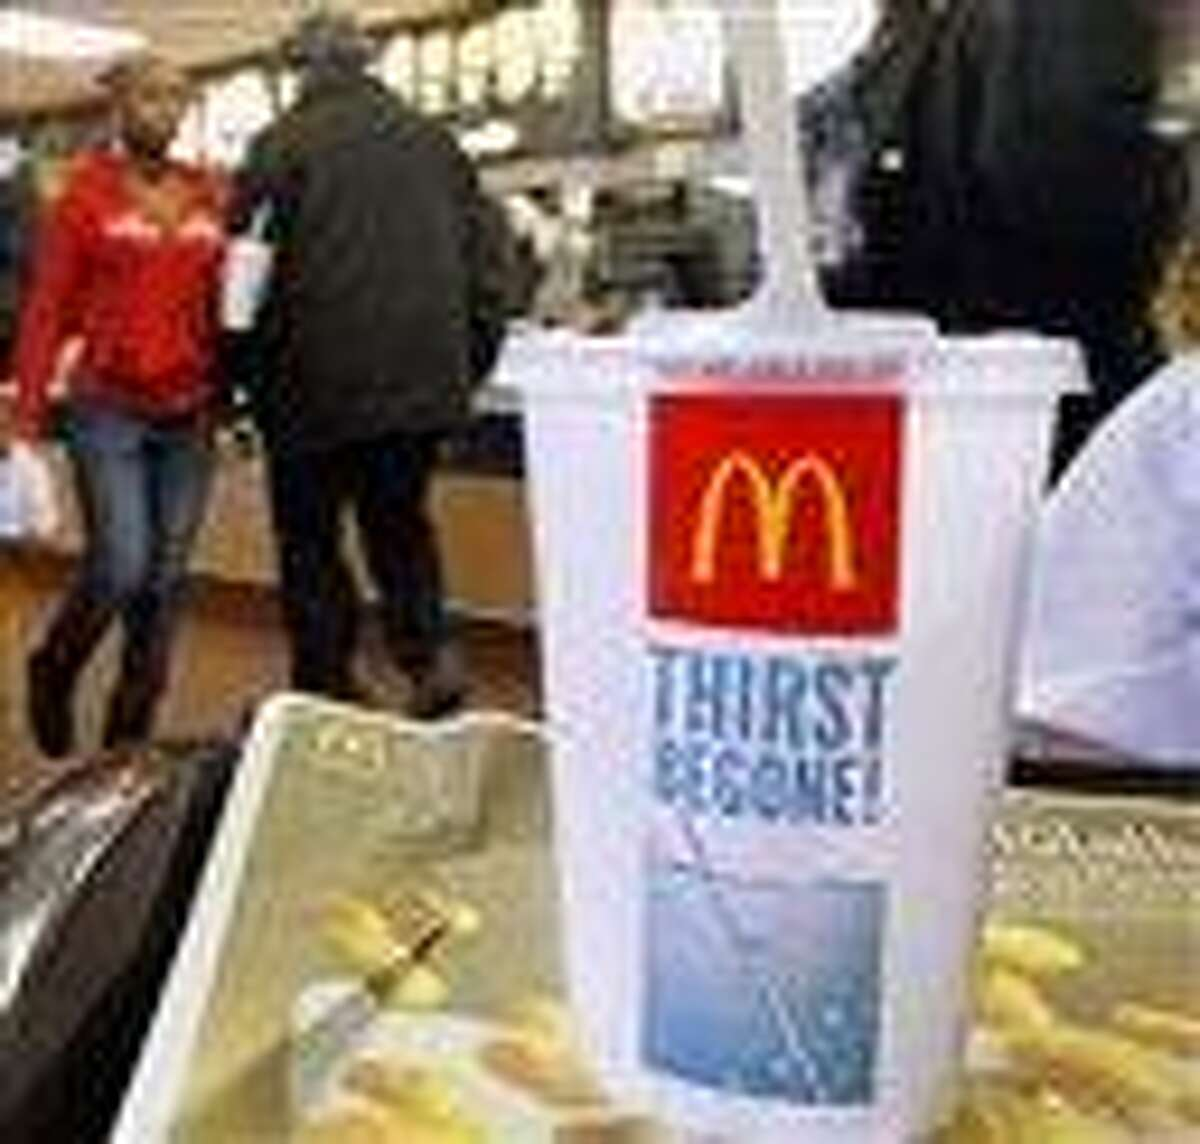 In this file photo, the McDonald's logo is displayed on a drink as customers purchase lunch at McDonald's, in Springfield, Ill. McDonald's Corp. saw net income jump 11 percent in the fourth quarter, as the fast-food giant continued to attract budget-conscious customers with low prices. Associated Press